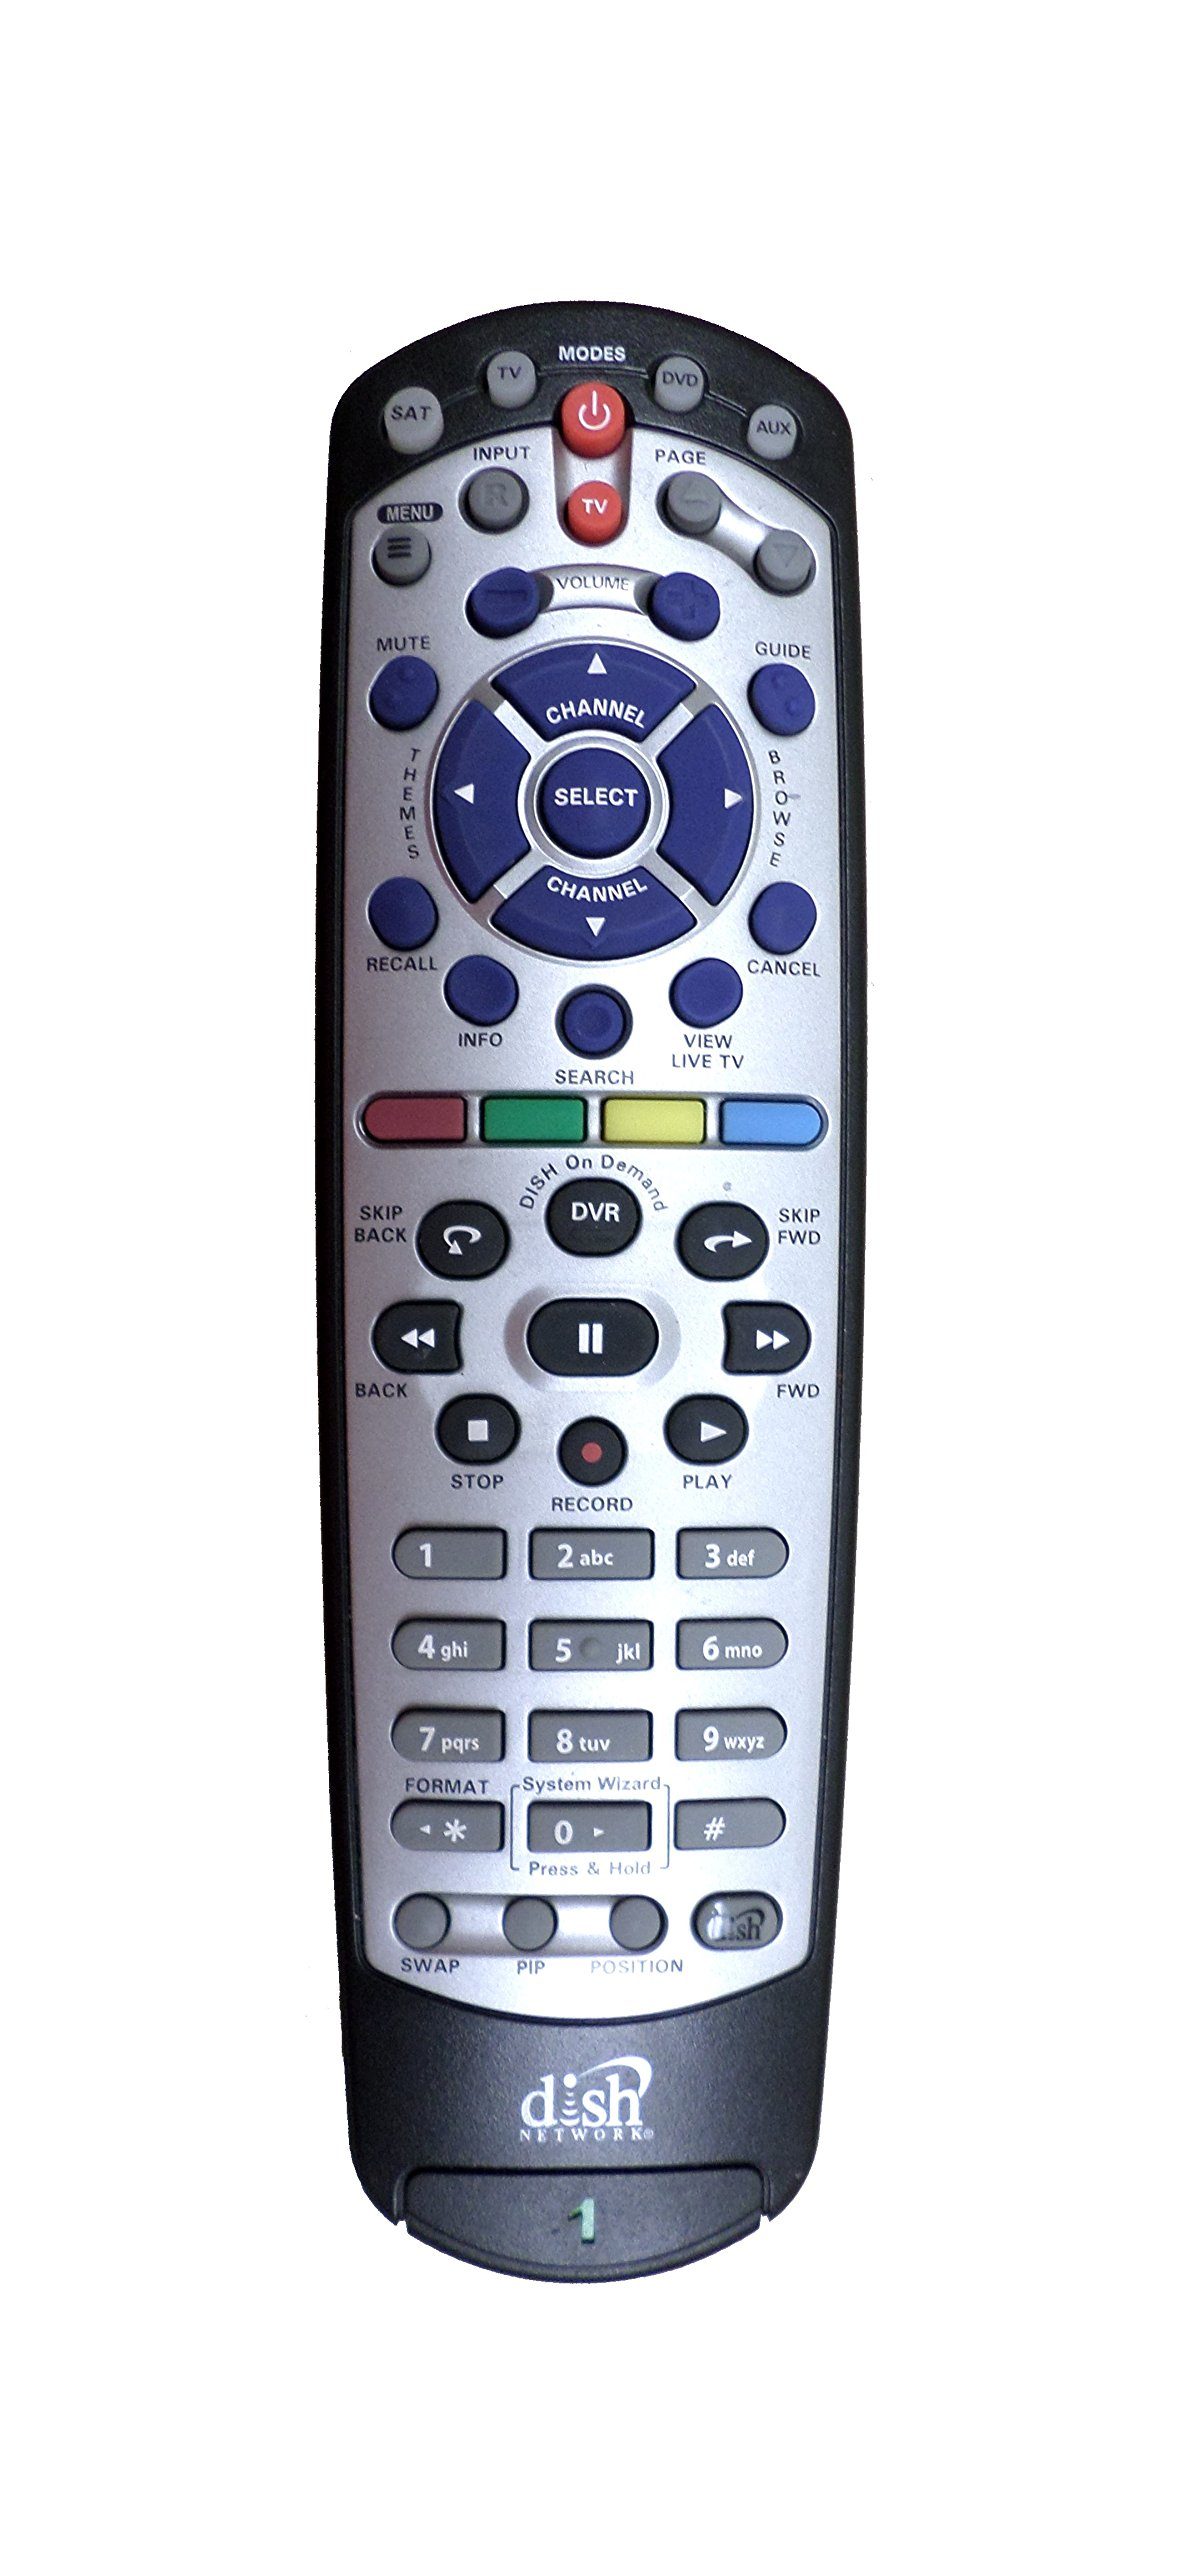 Dish Network 20.1 IR Remote Control TV1 by Dish Network